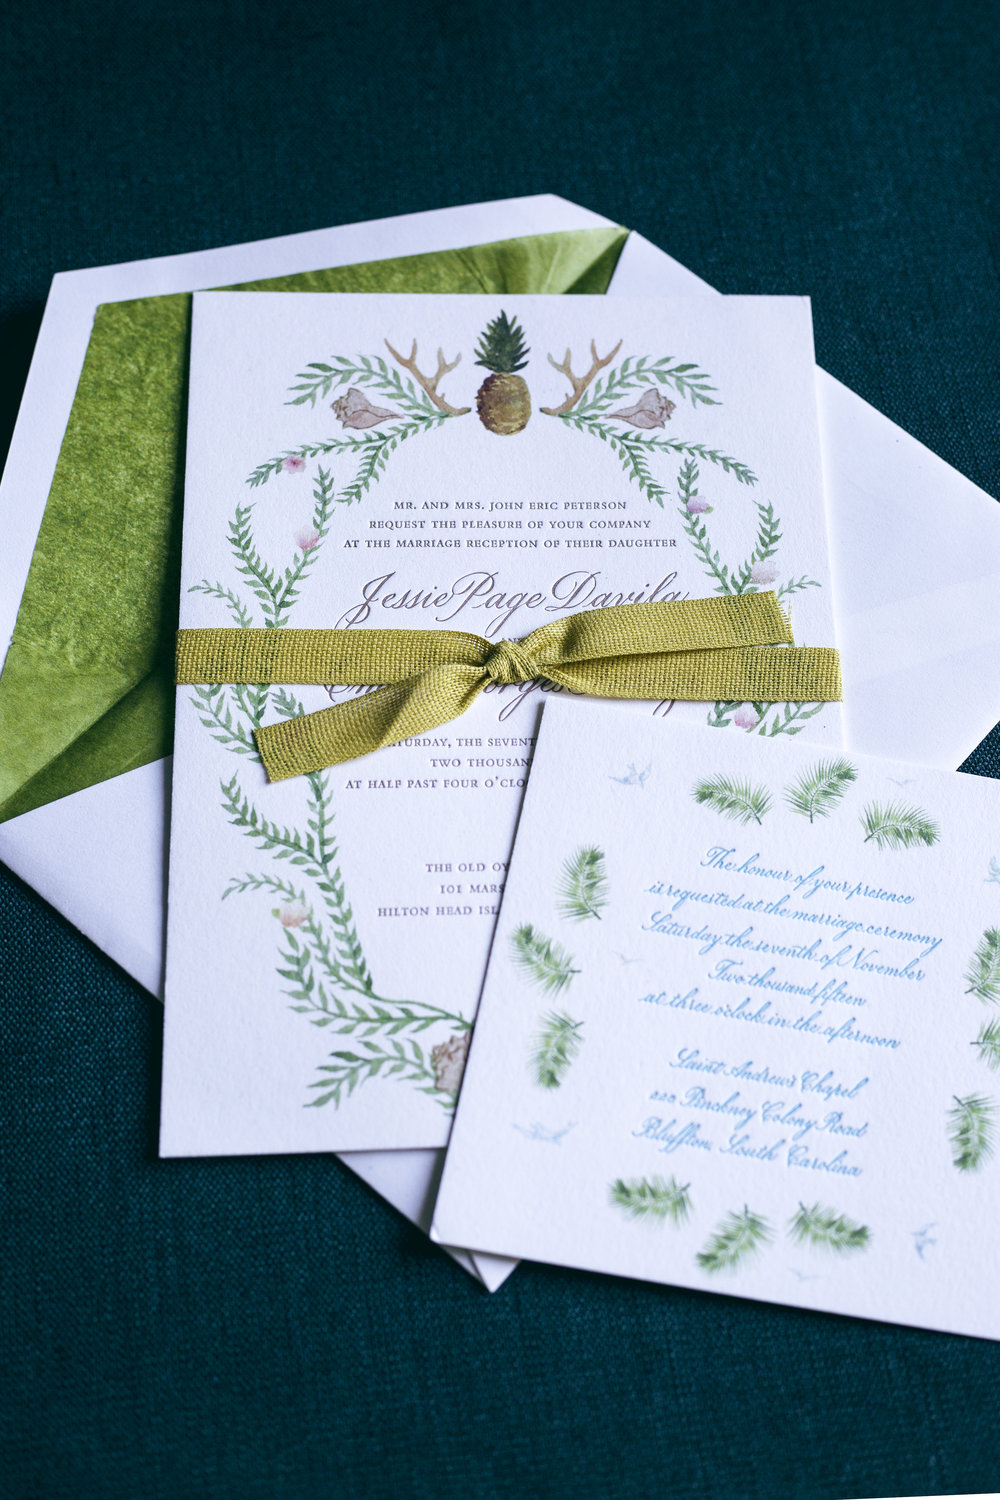 Hilton Head Island flora and fauna watercolor and calligraphy wedding invitation | www.chavelli.com